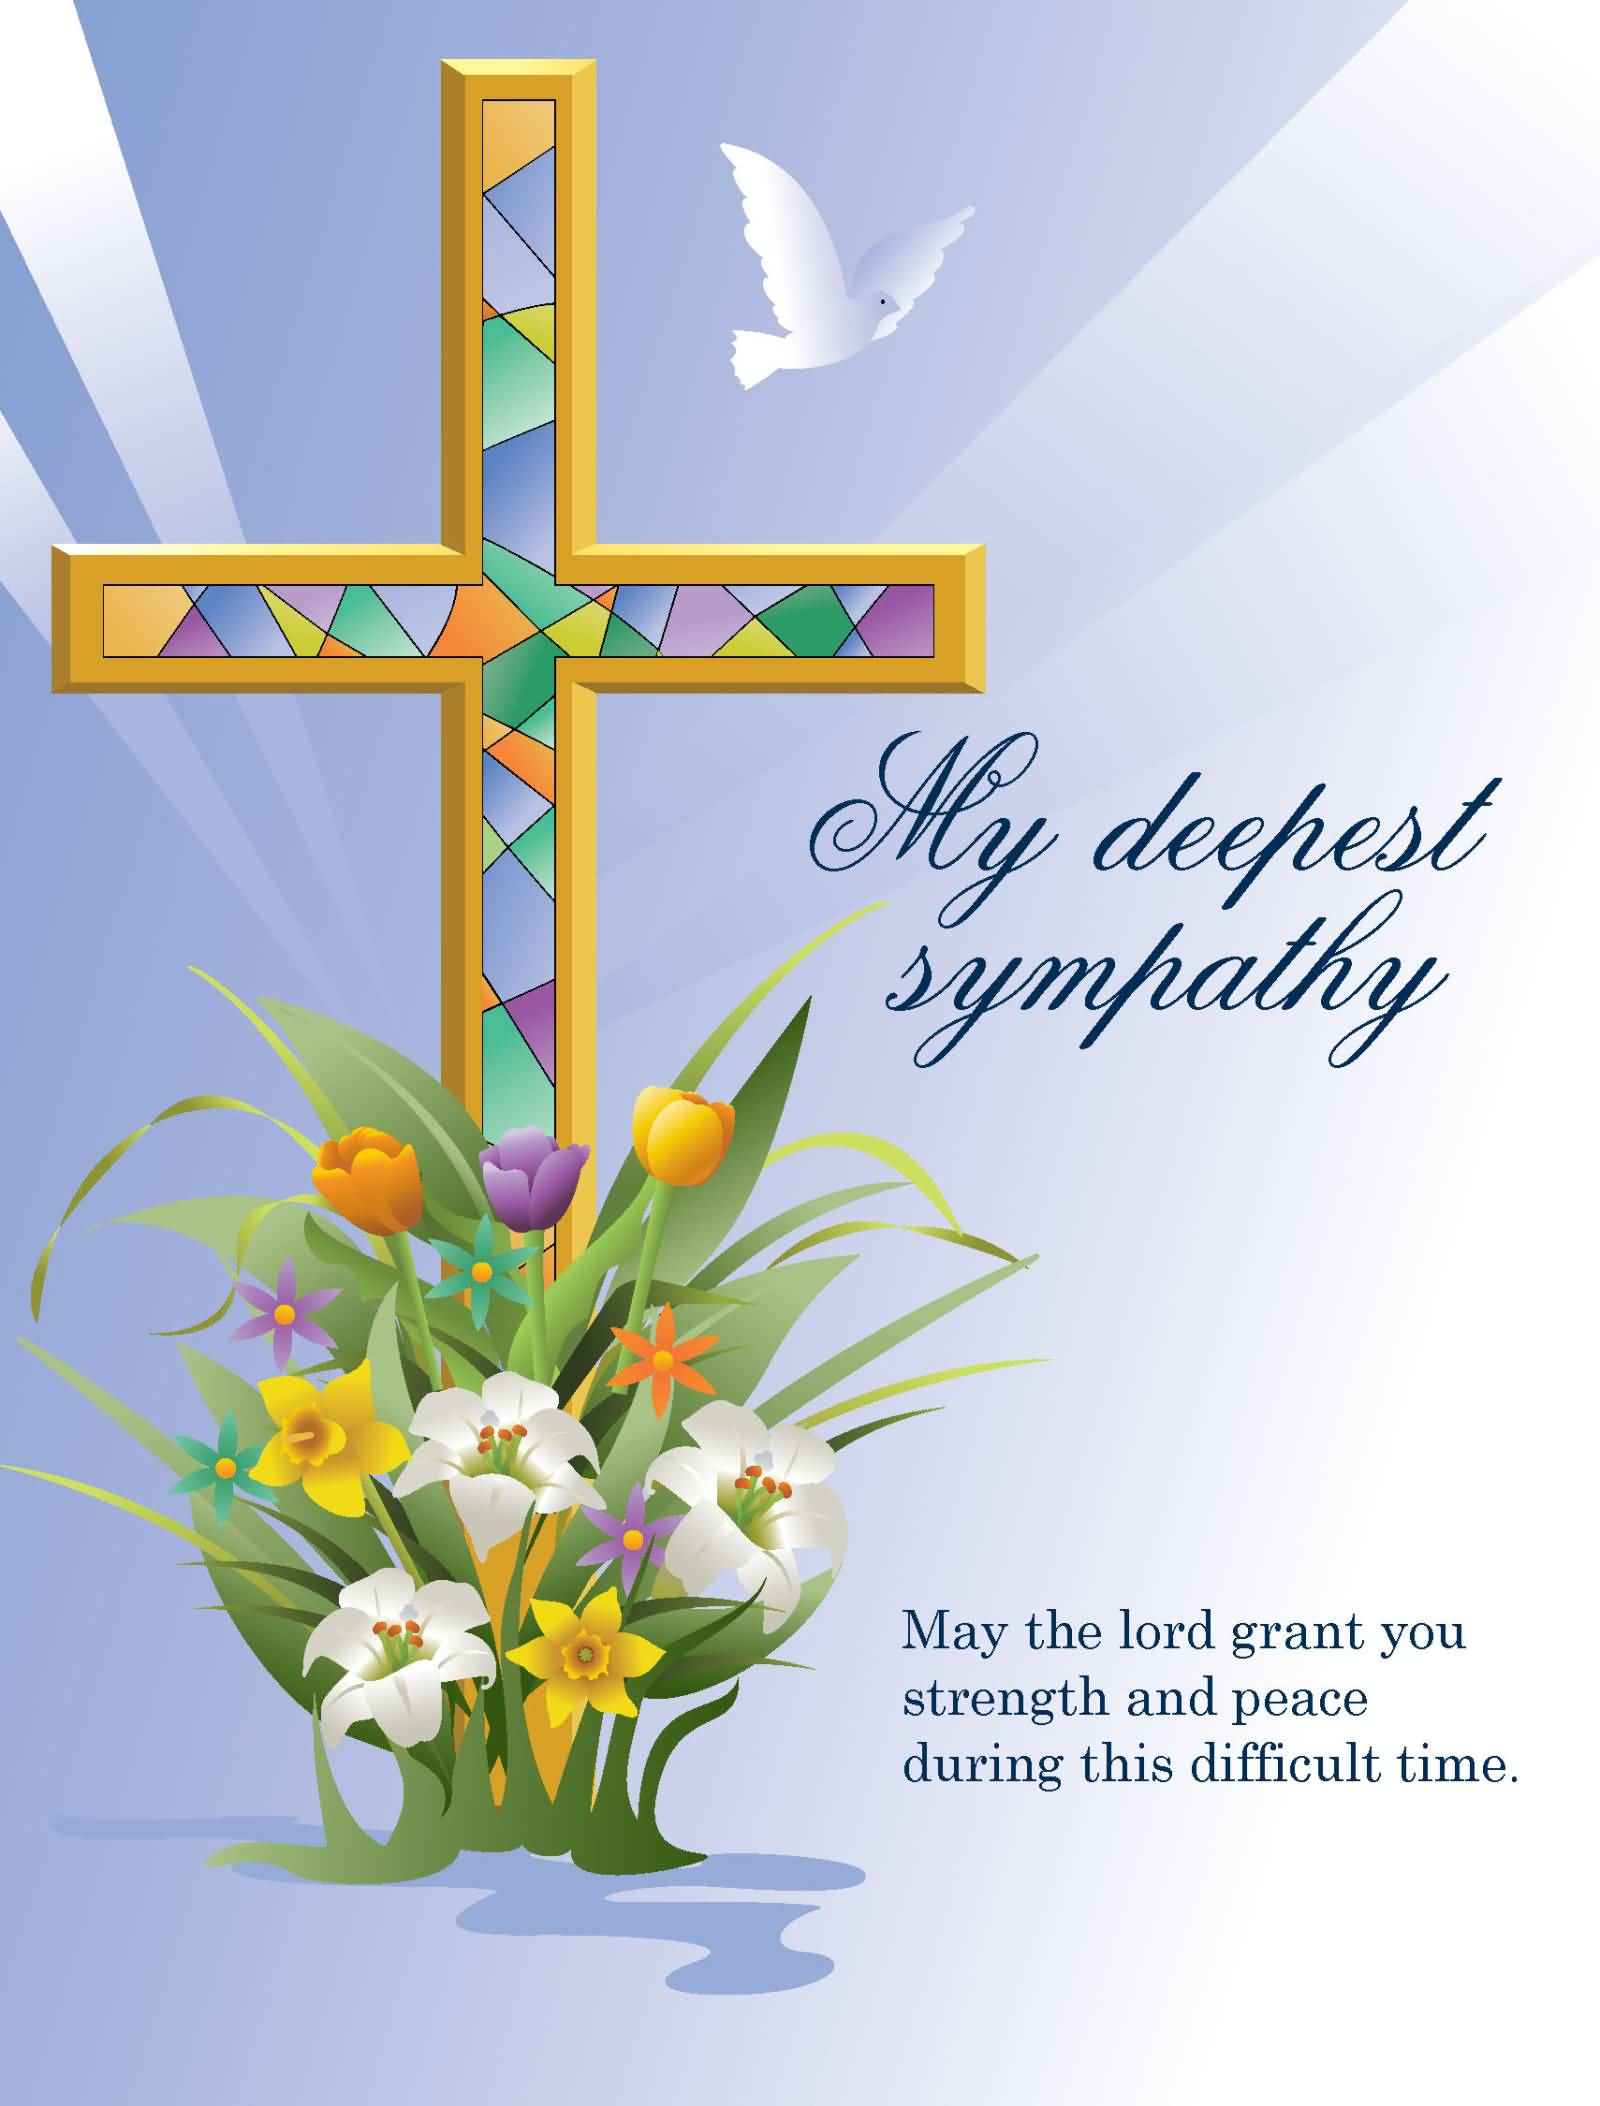 Sympathy clipart may. Message pictures and